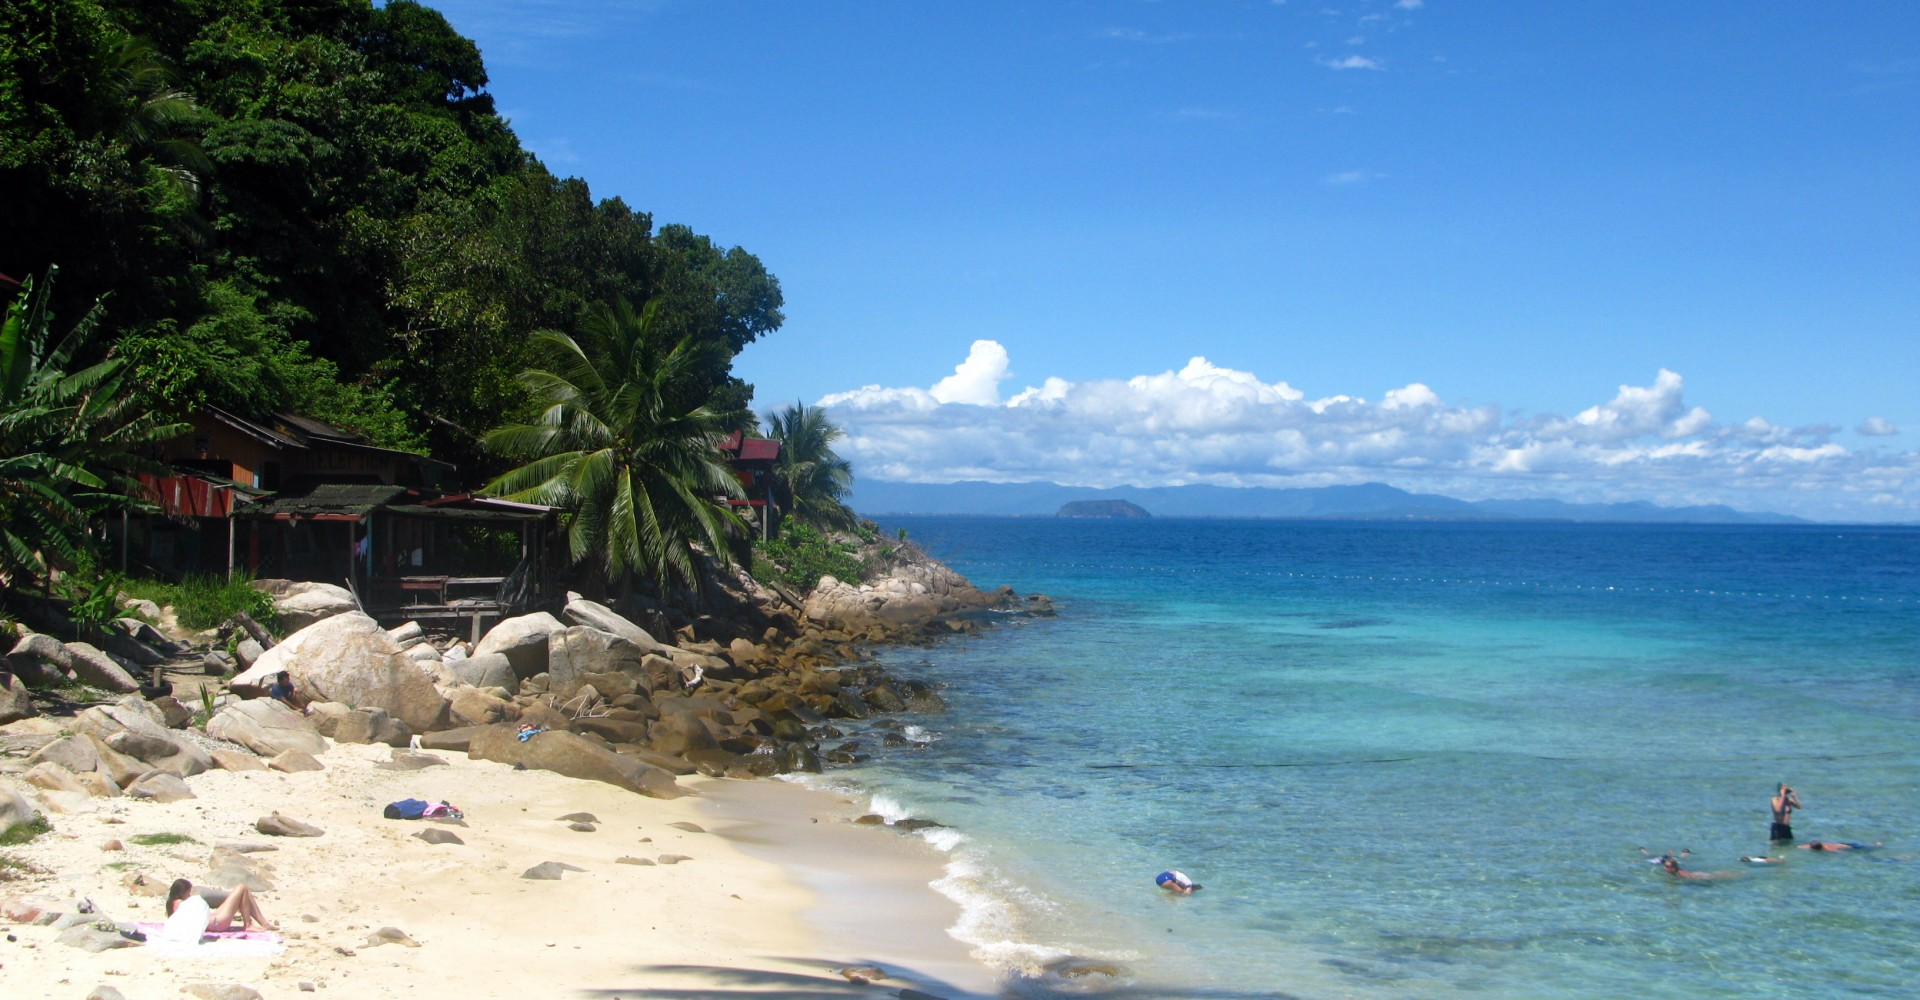 The Perhentian Islands: Malaysia's Perfect Beach Destination